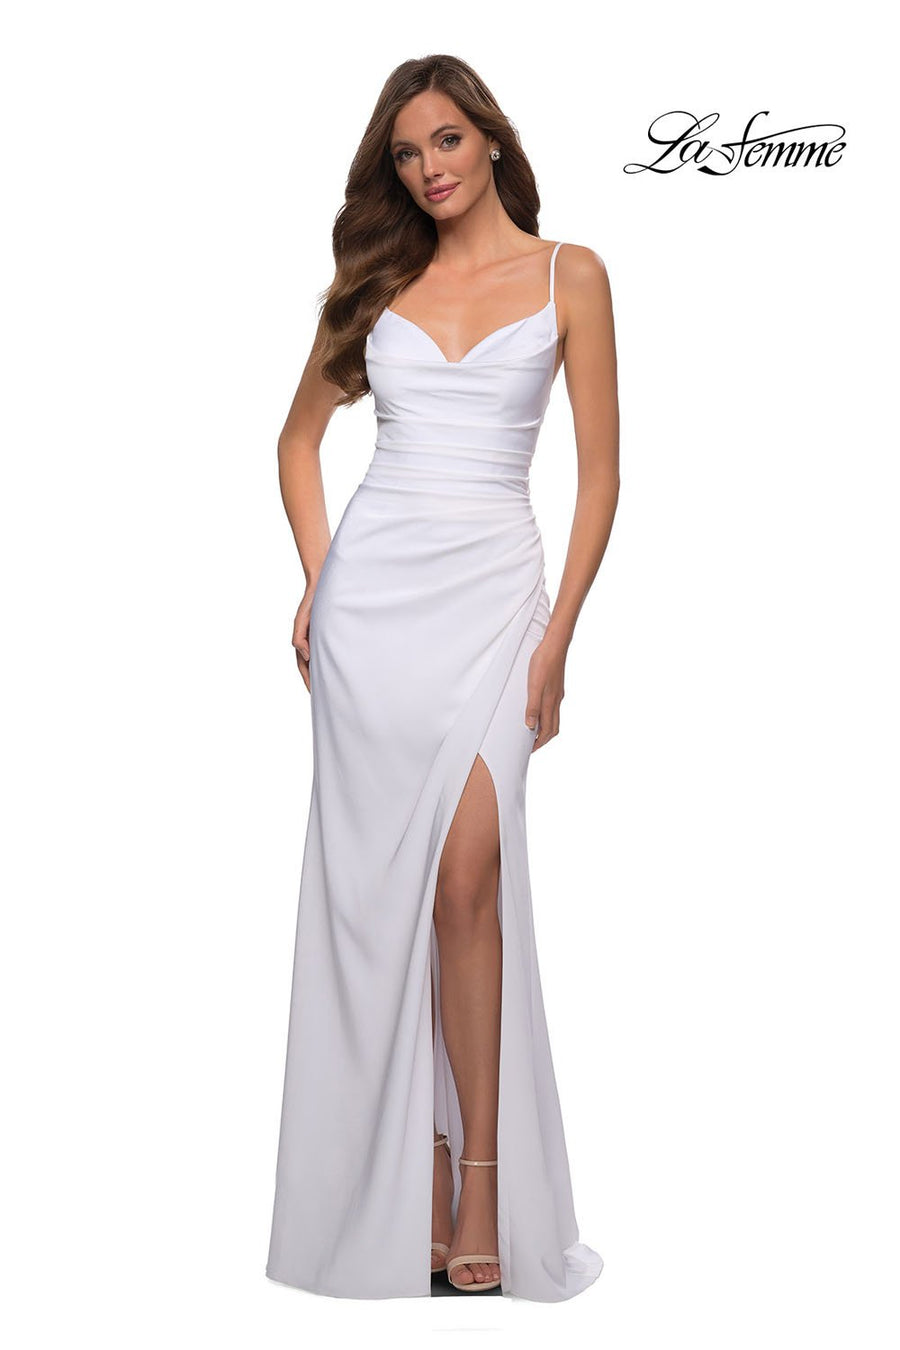 La Femme 29615 prom dress images.  La Femme 29615 is available in these colors: Black, Emerald, Royal Blue, White.